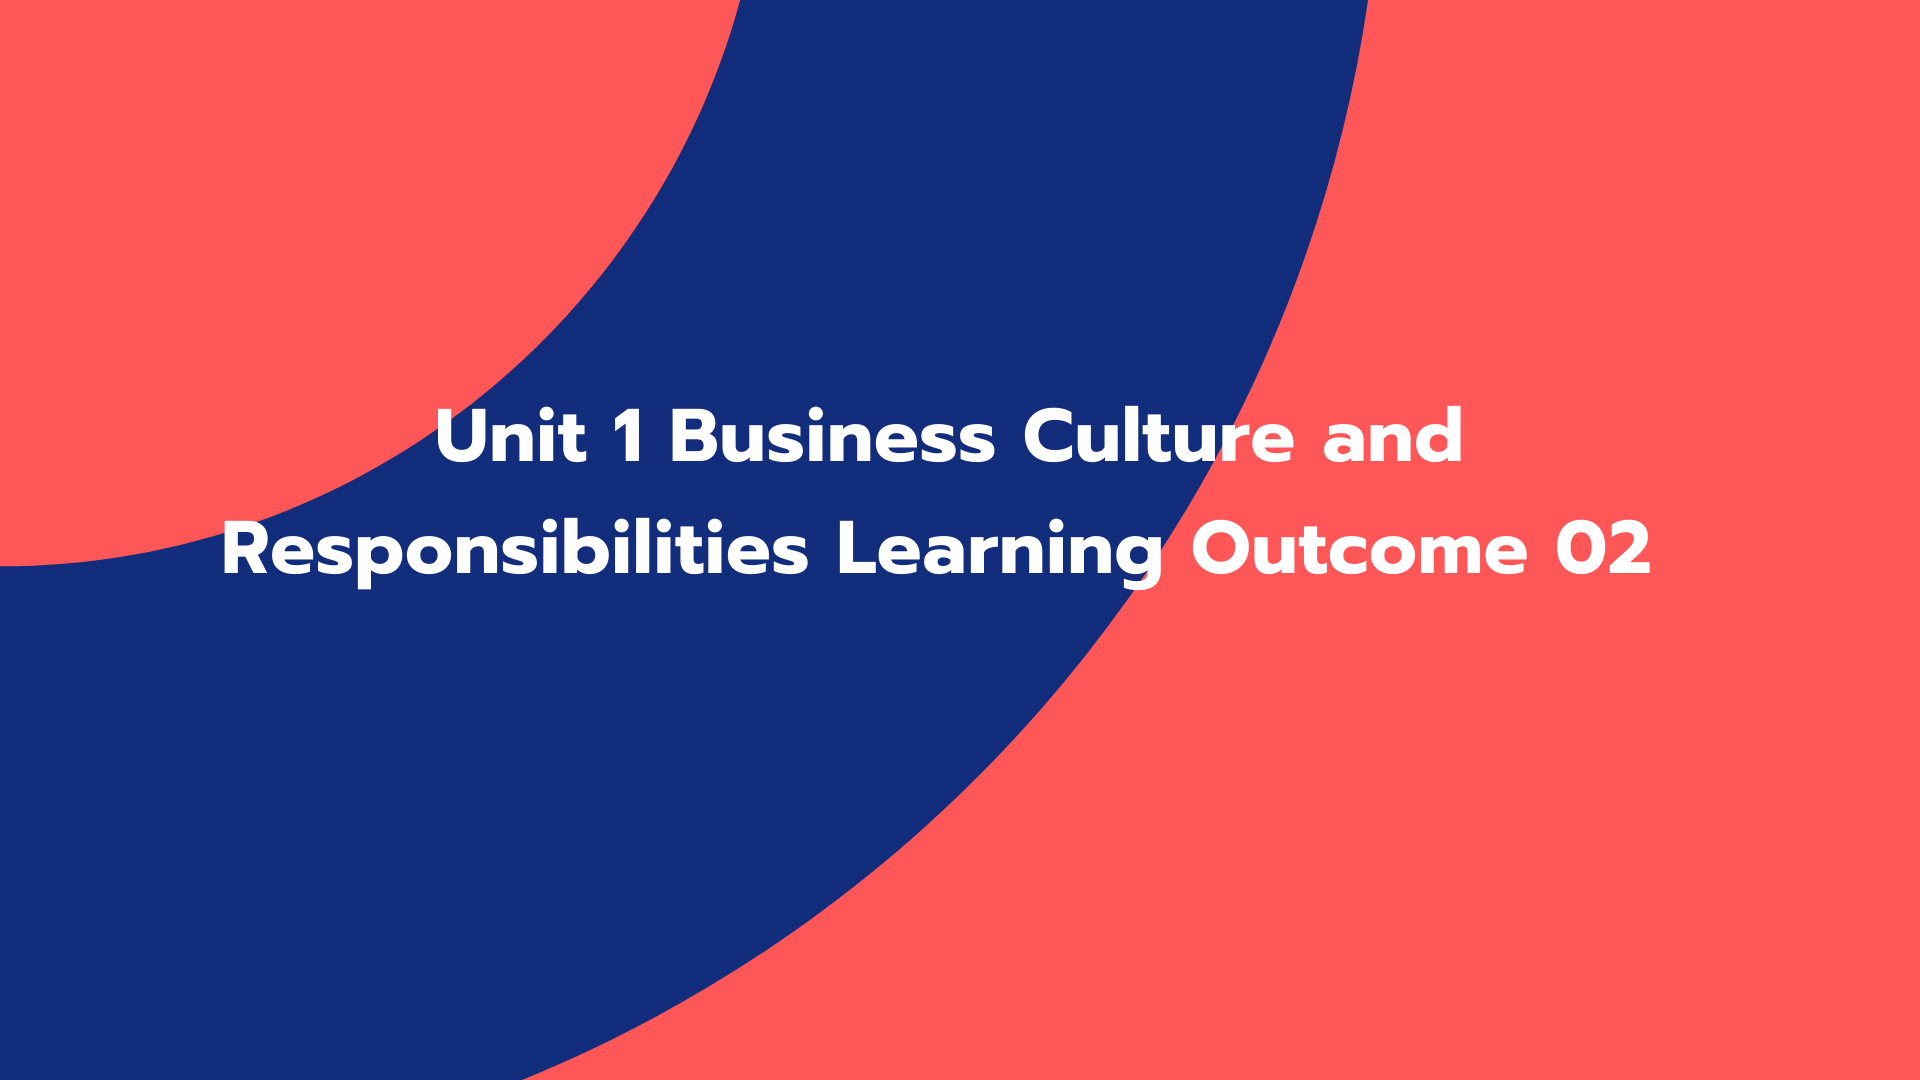 Unit 1 Business Culture and Responsibilities Learning Outcome 02